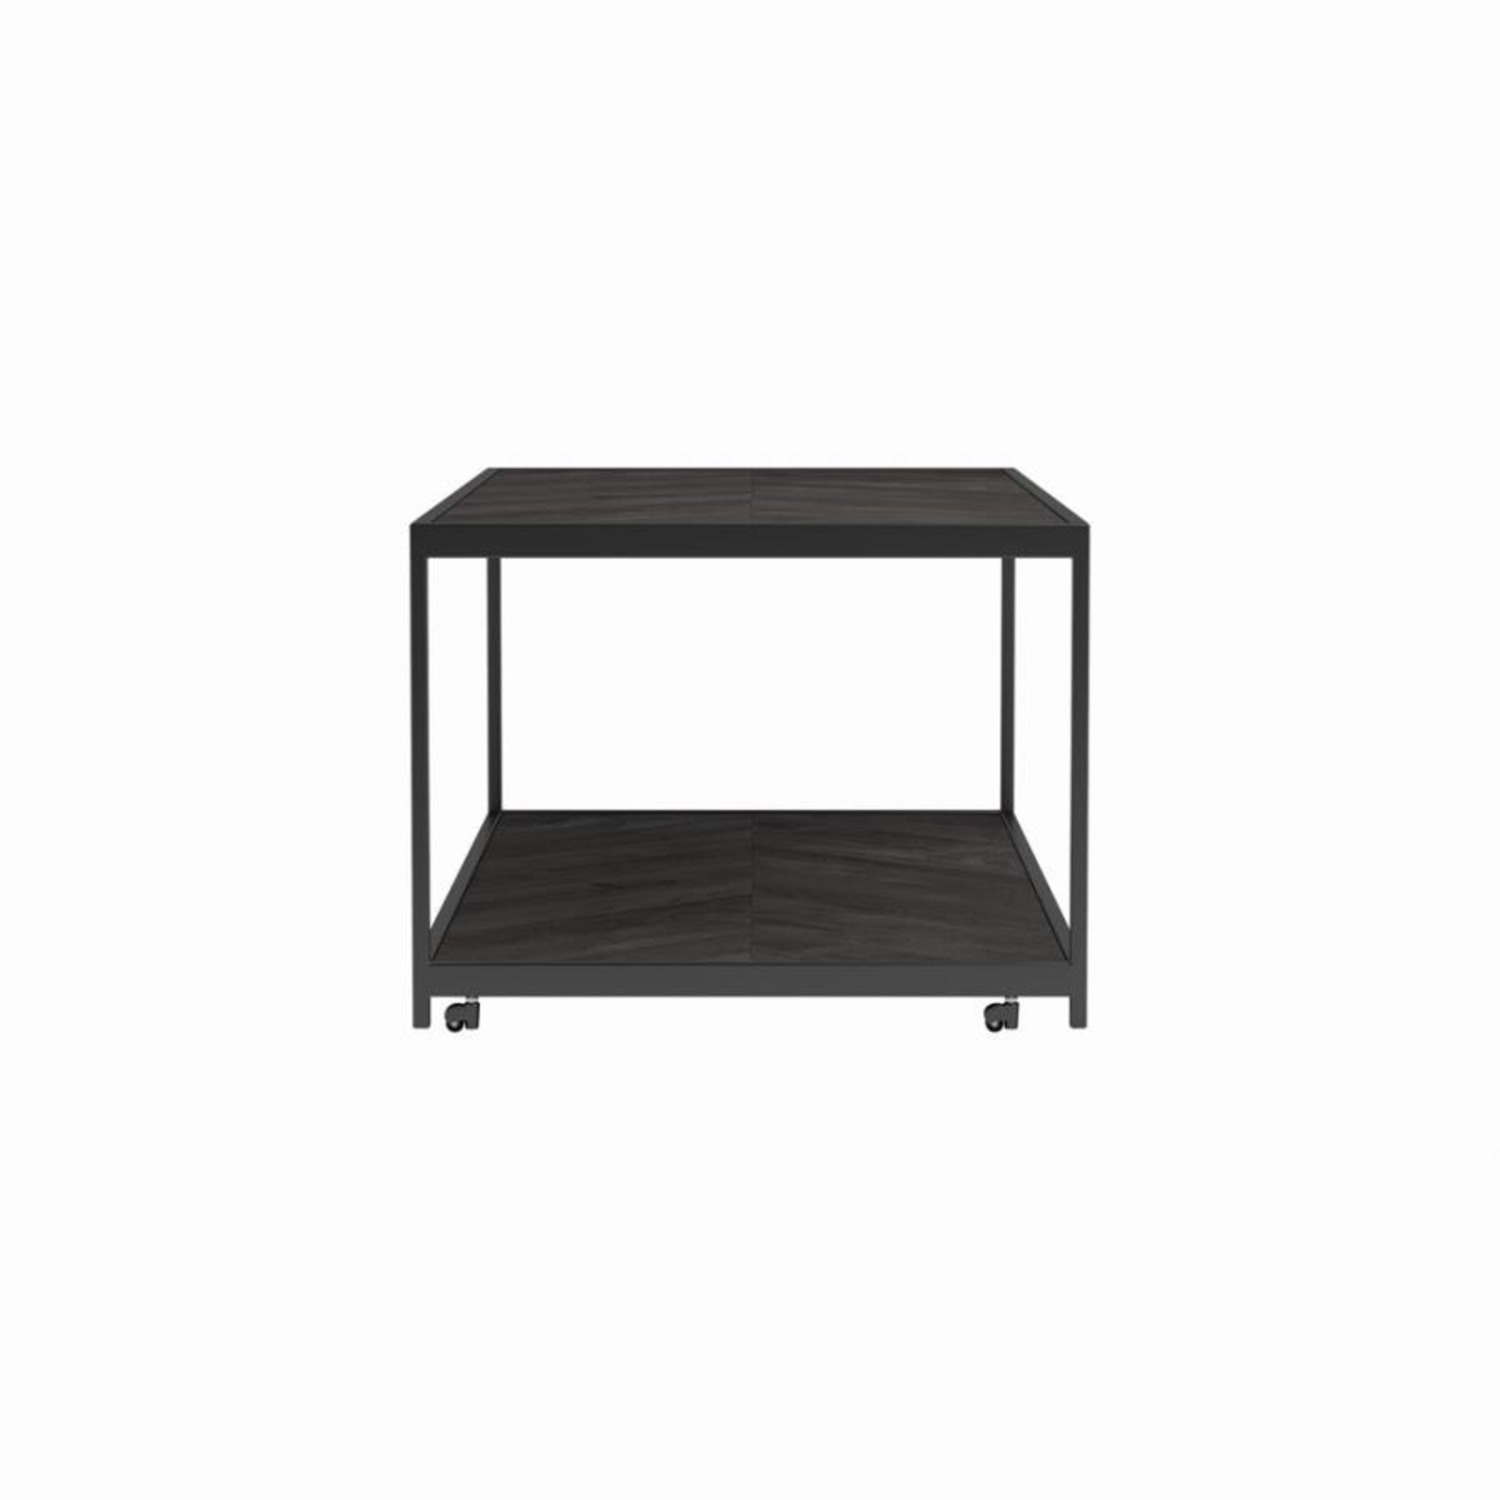 End Table W/ Metal Frame In Sandy Black Finish - image-2